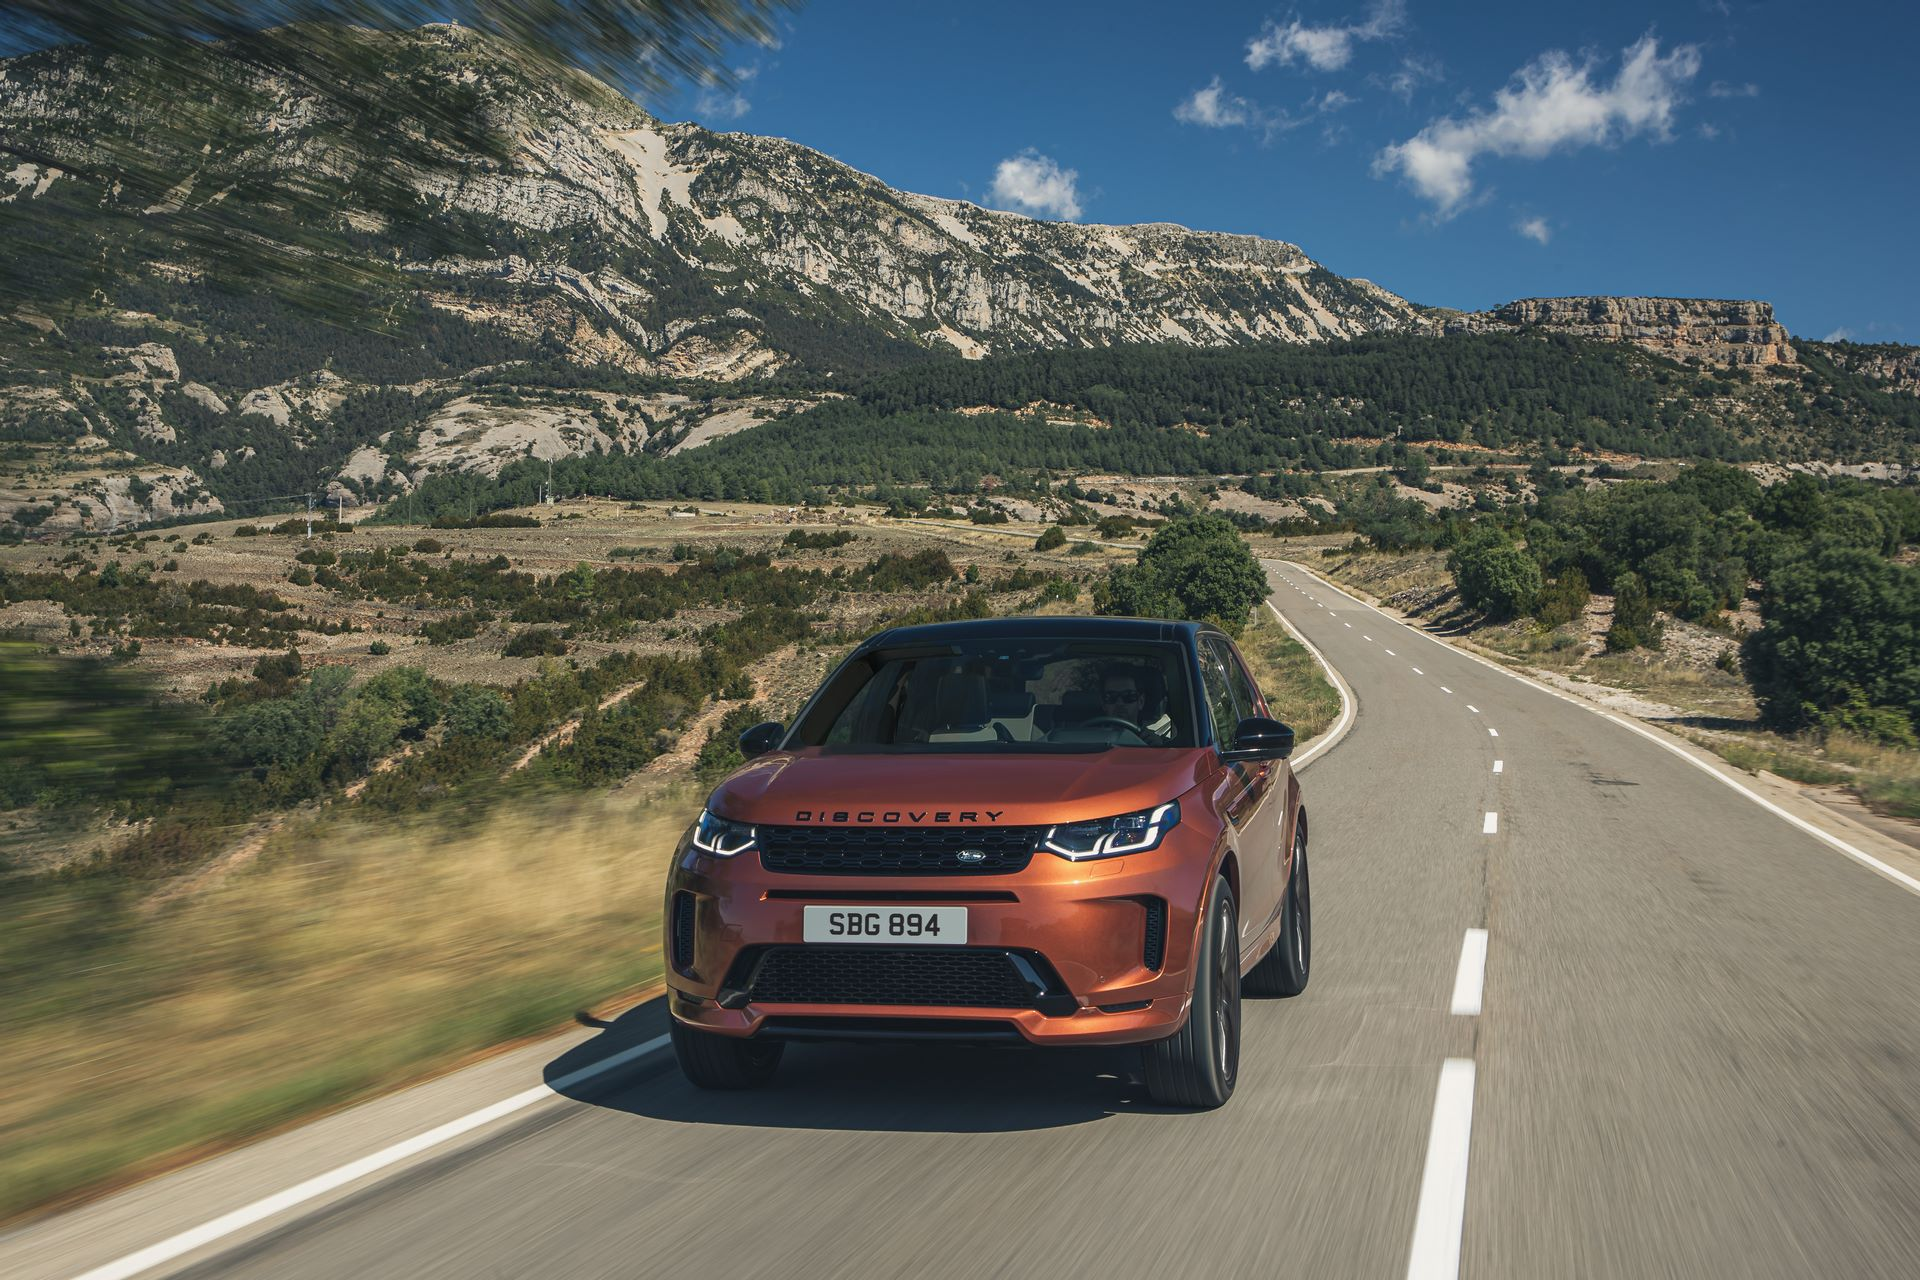 Range-Rover-Evoque-and-Land-Rover-Discovery-Sport-MHEV-diesel-2